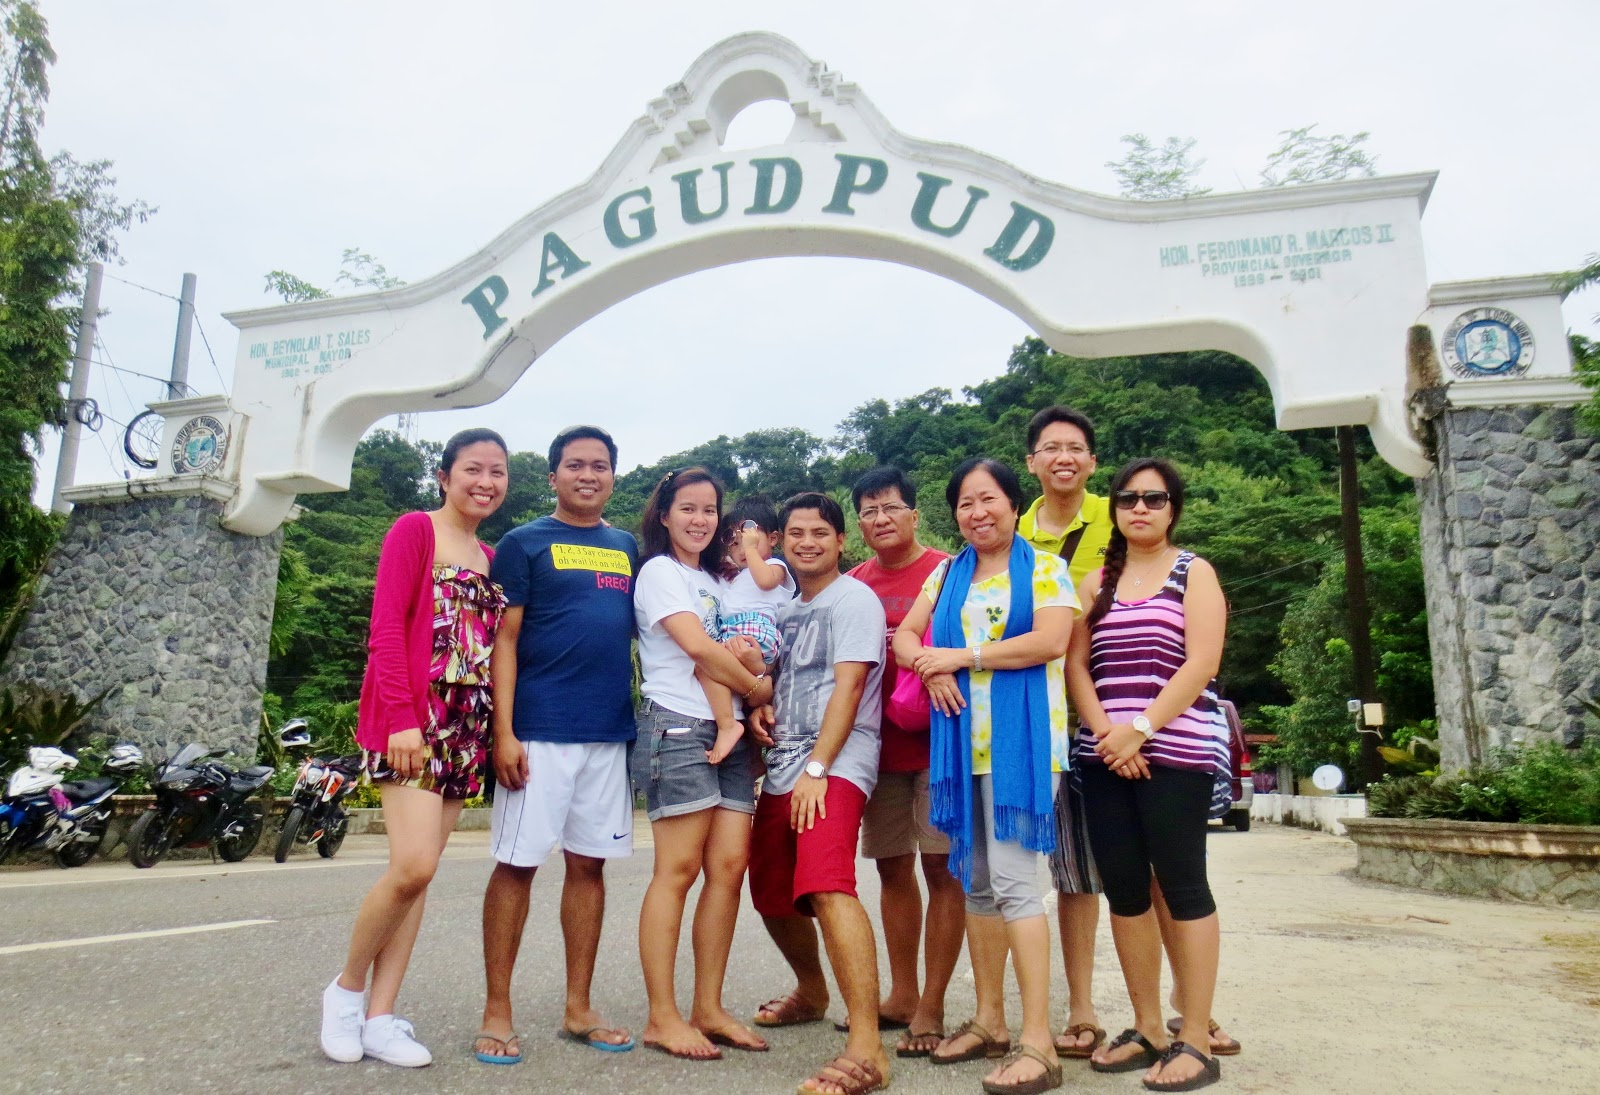 Pagudpud Welcome Arch